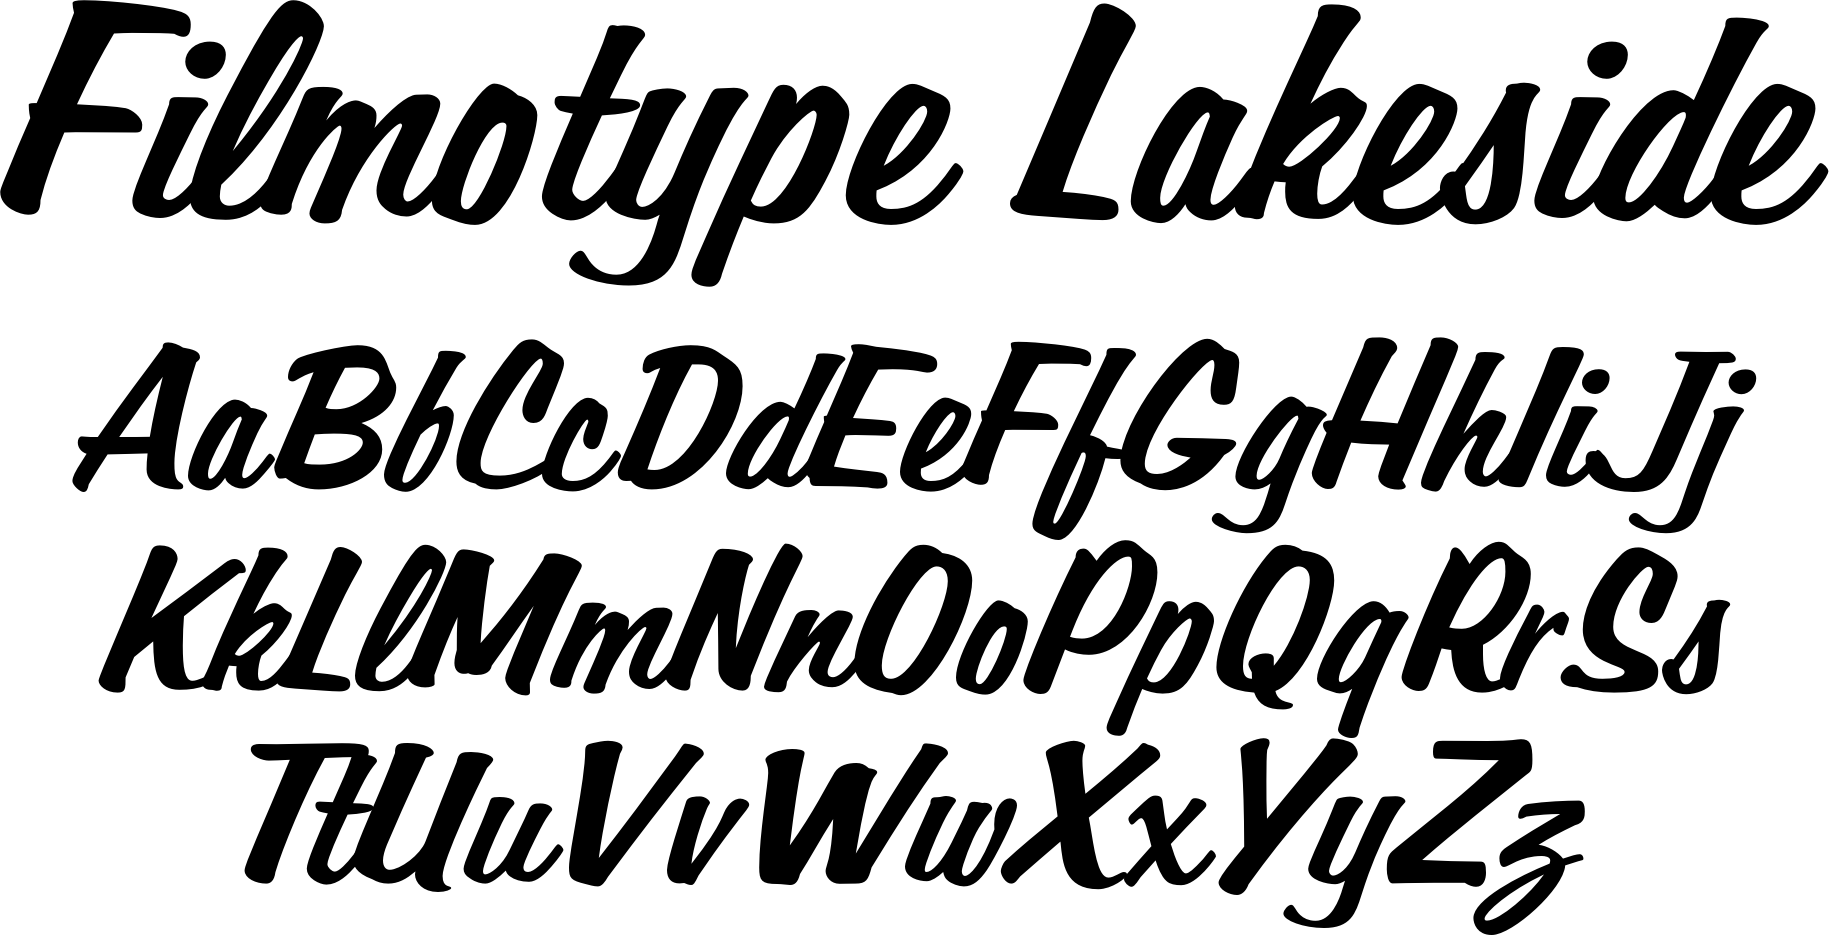 Filmotype Lakeside font - originally offered by Filmotype in